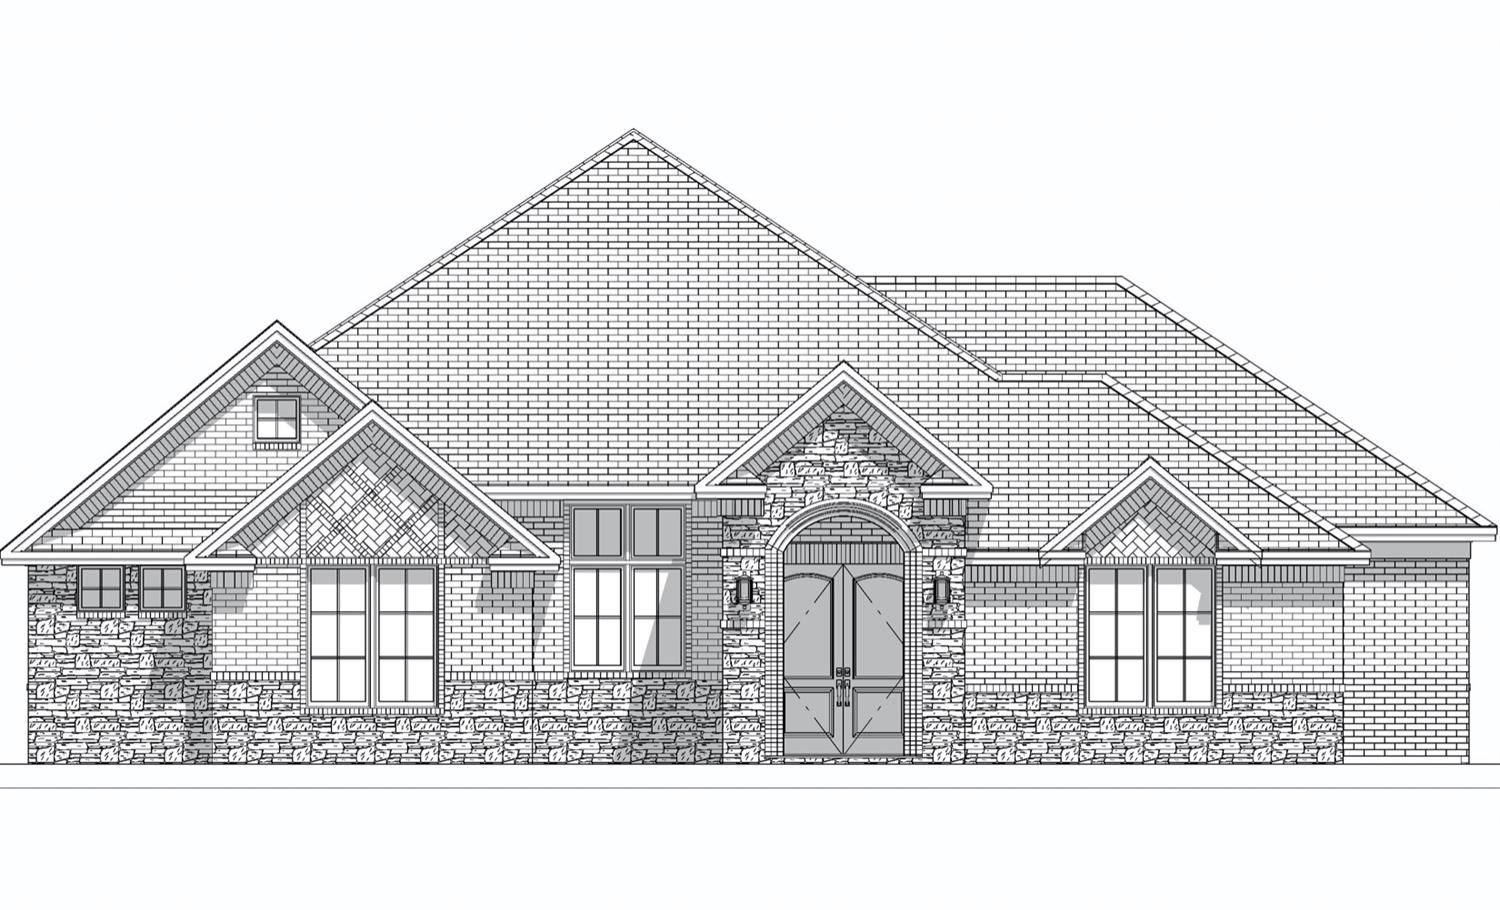 Gorgeous NEW BUILD located inside of The Ridge! This is a 4 bedroom 3 bath with an office that will be perfect for entertaining. This home will be ready in about 60 days and WILL sell fast!